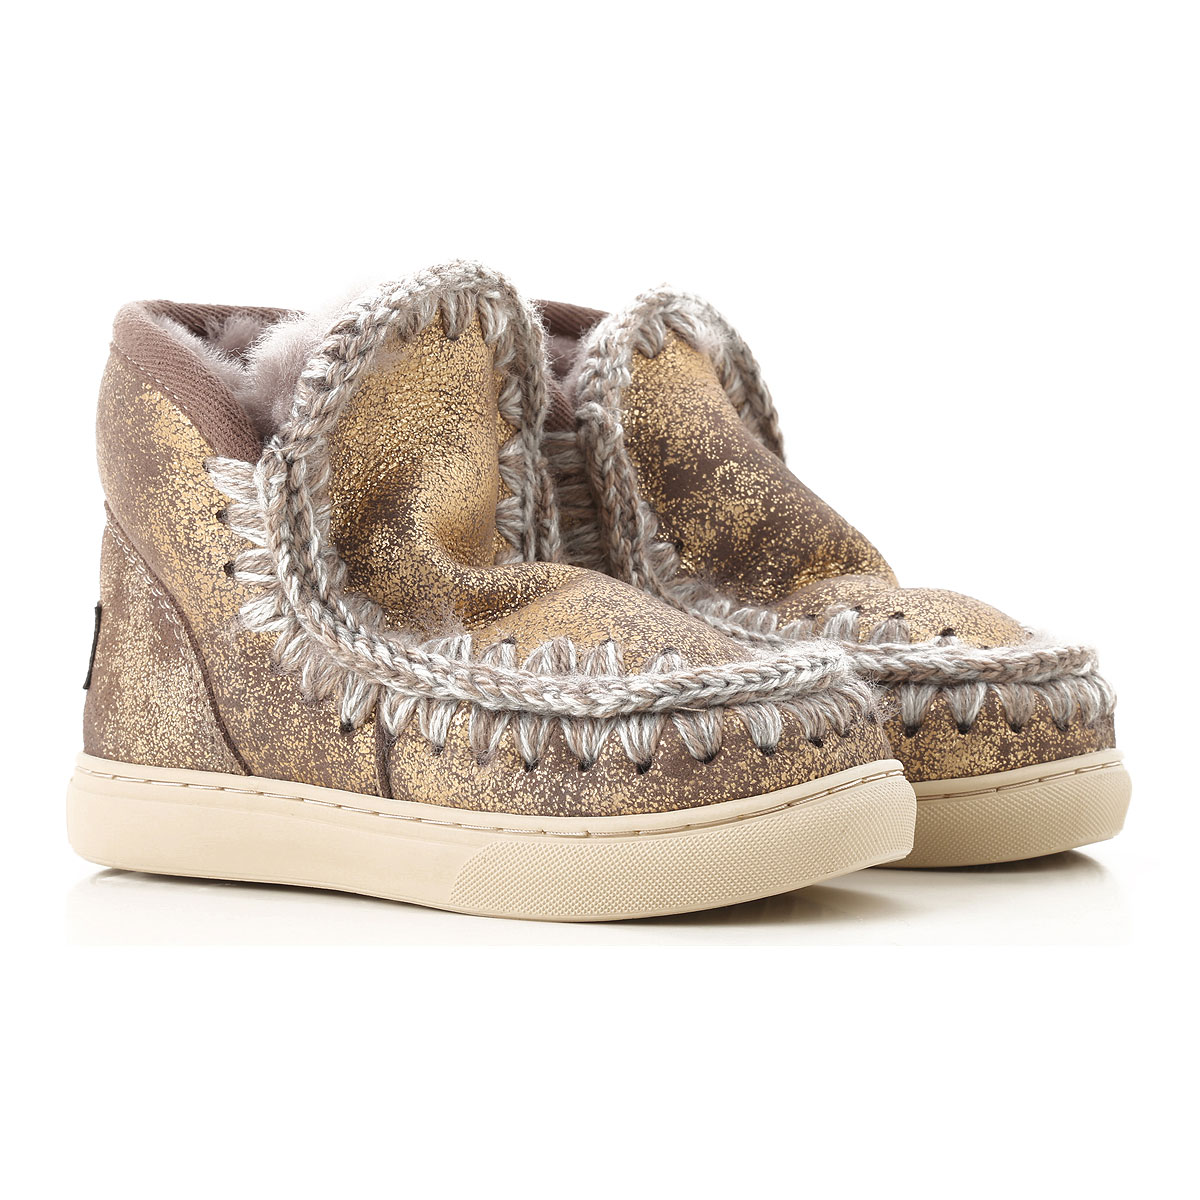 Image of Mou Kids Shoes for Girls, Bronze, Leather, 2017, 25 26 27 28 29 30 31 32 33 34 35